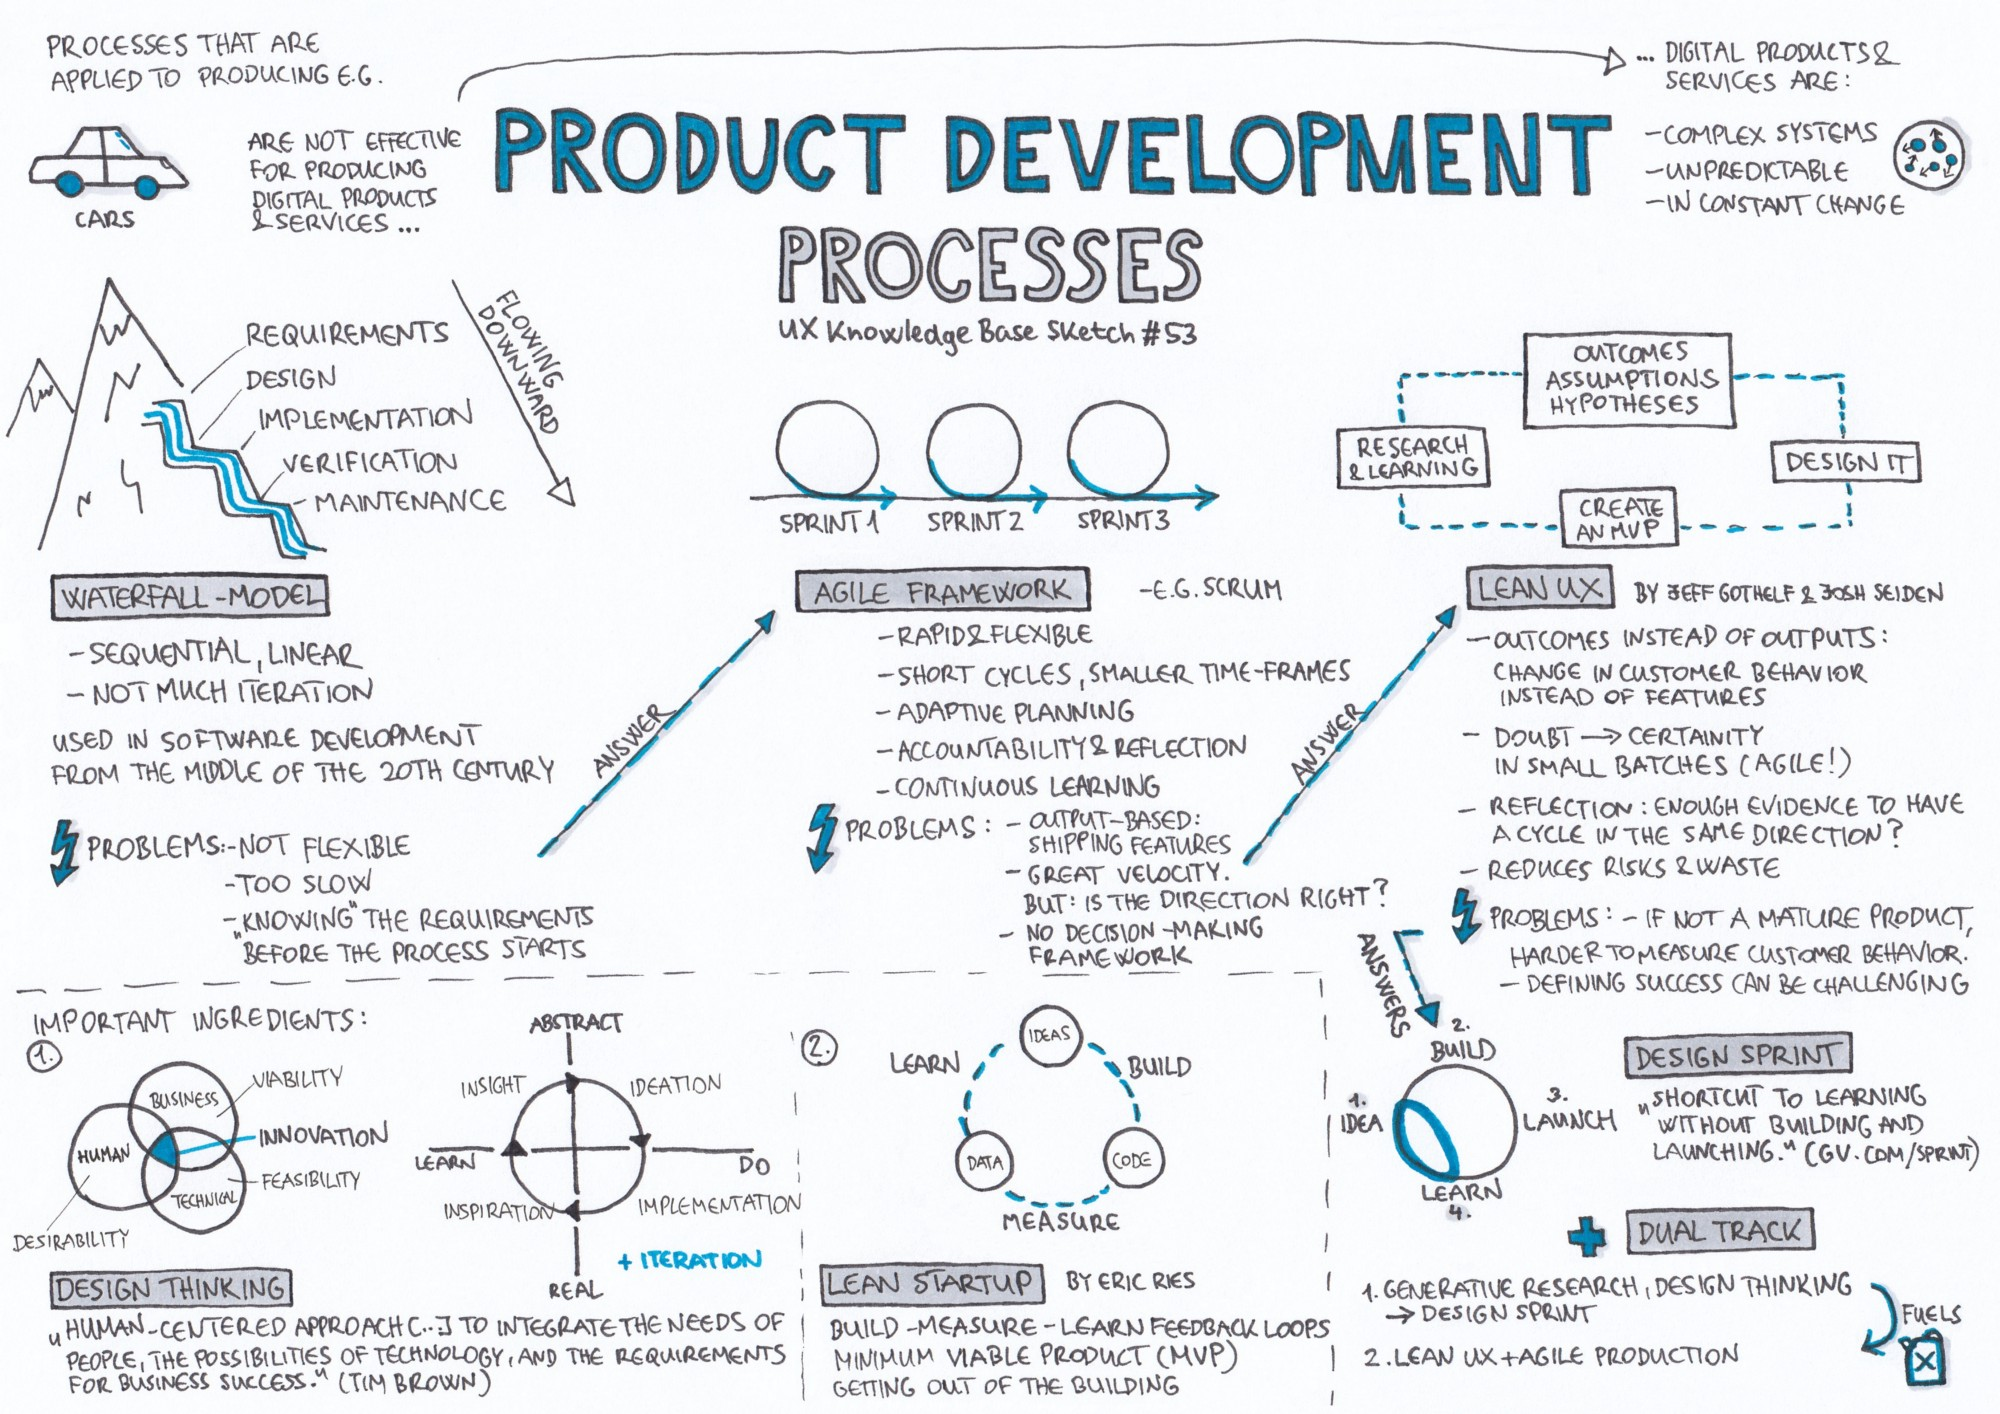 Product development processes ux knowledge base sketch for Product design development